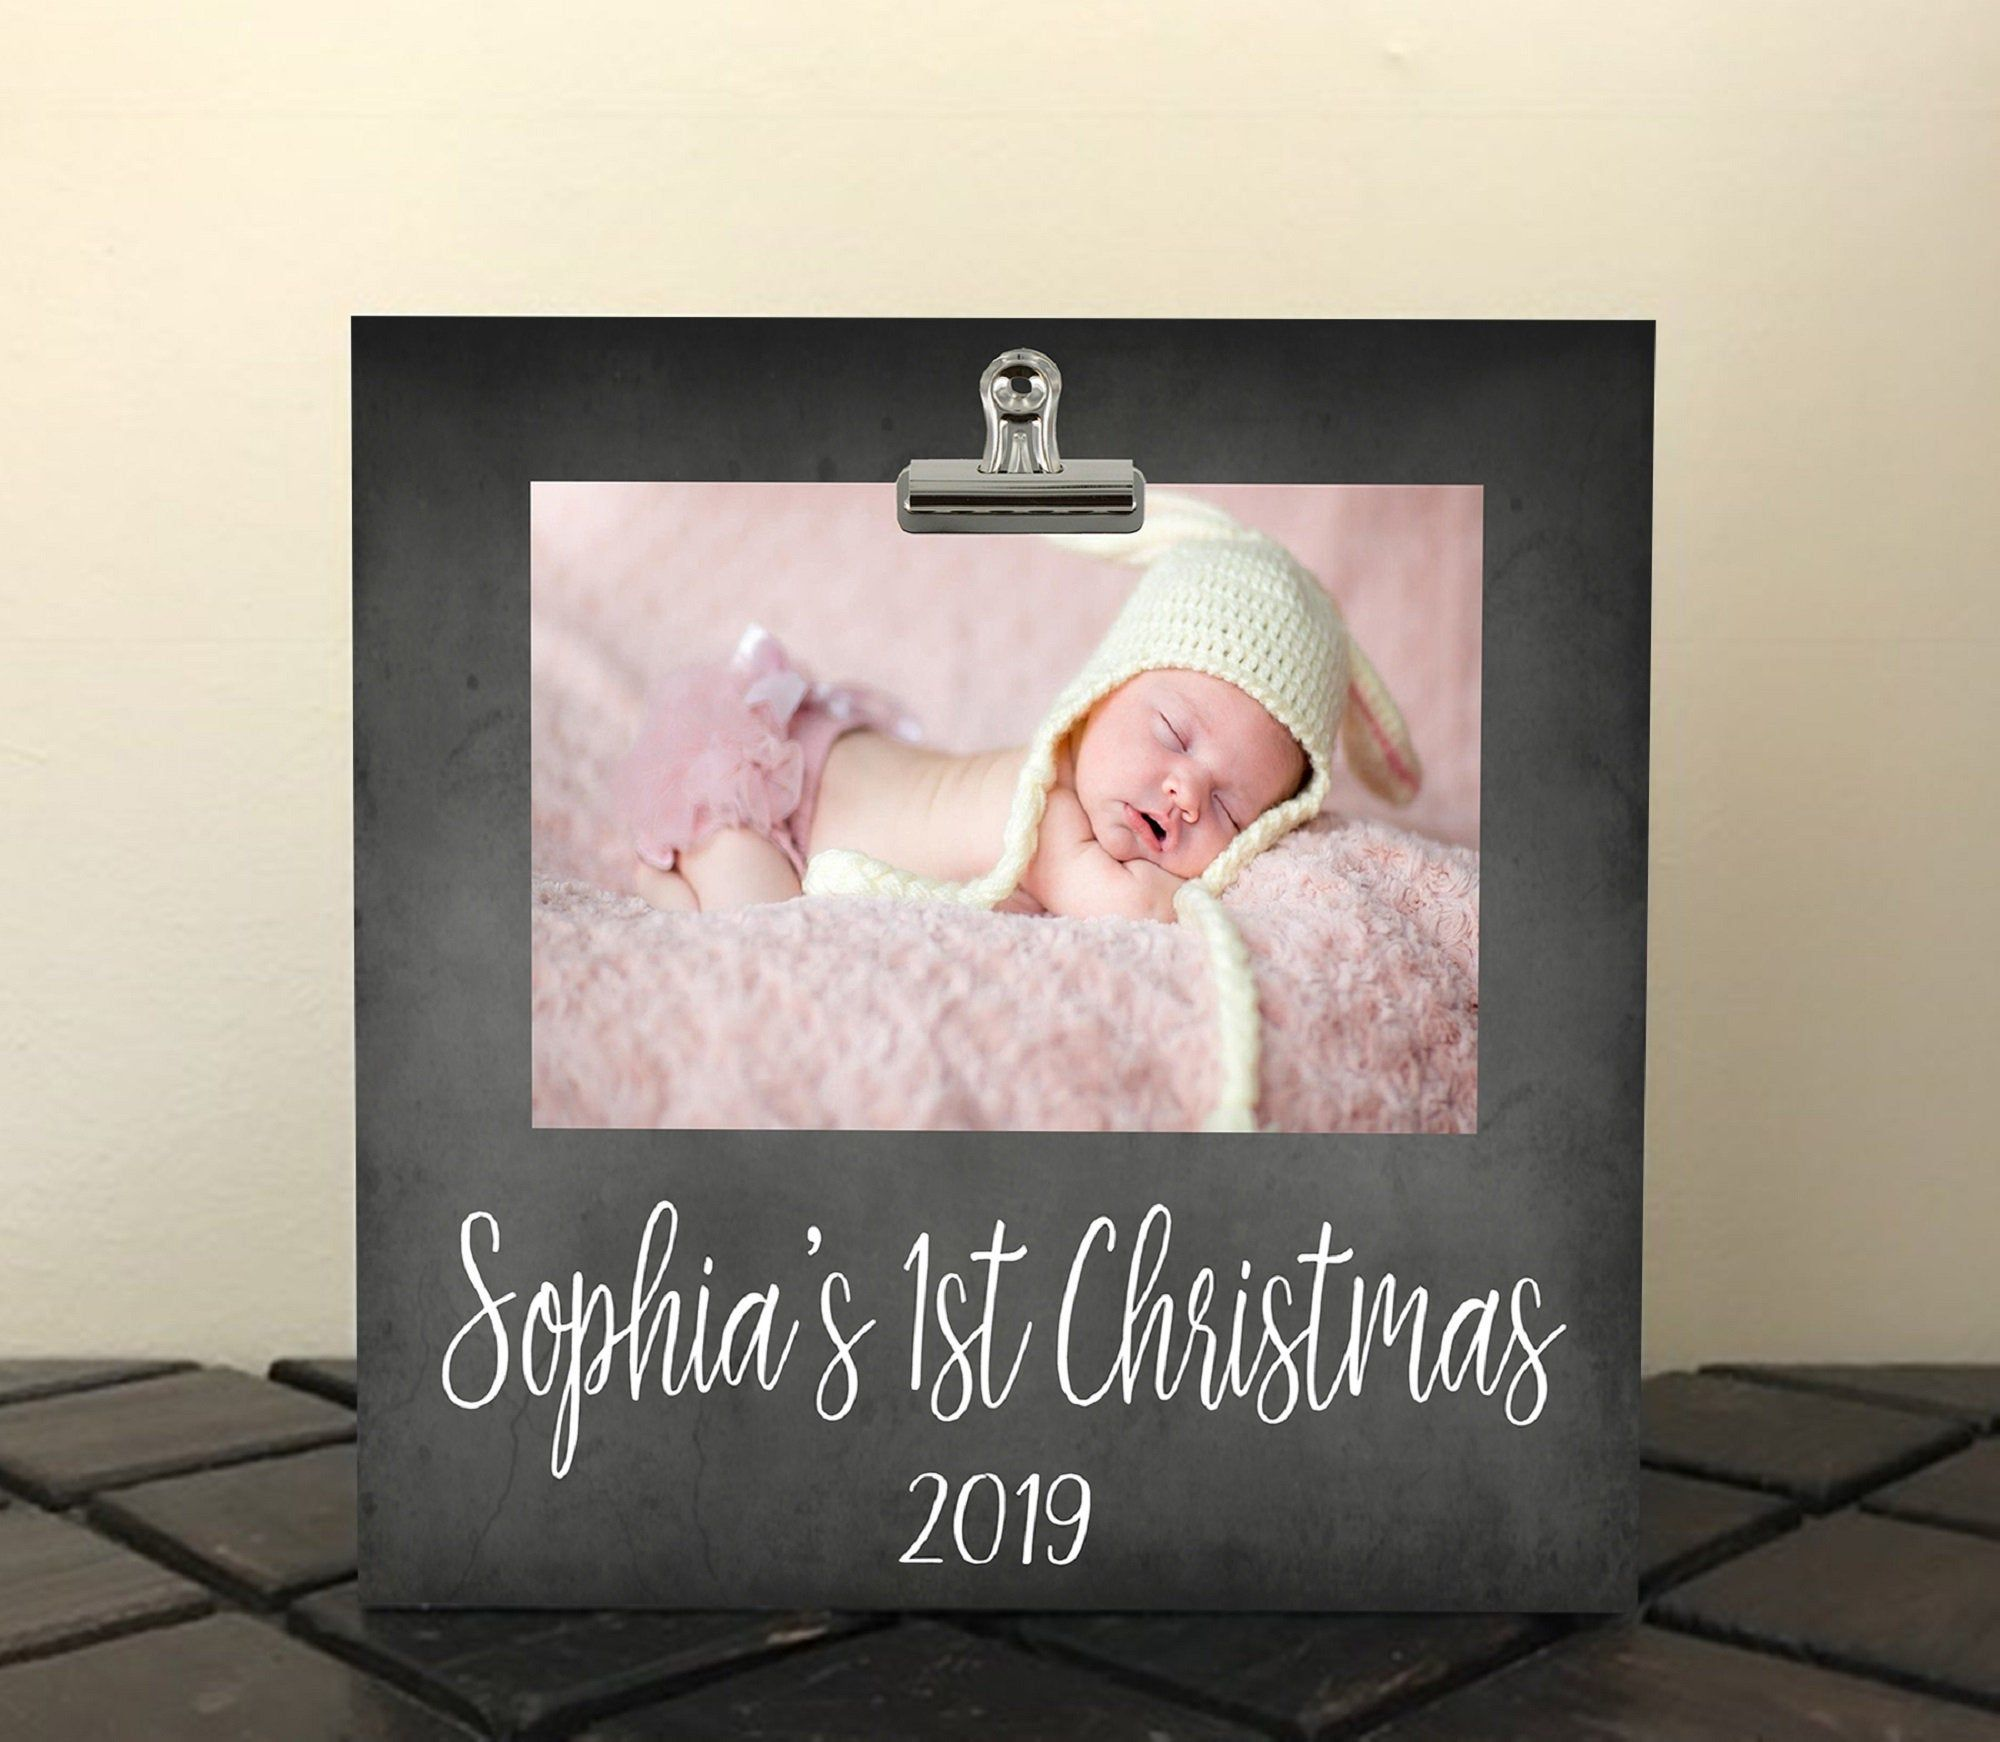 Babys first christmas free personalization perfect for